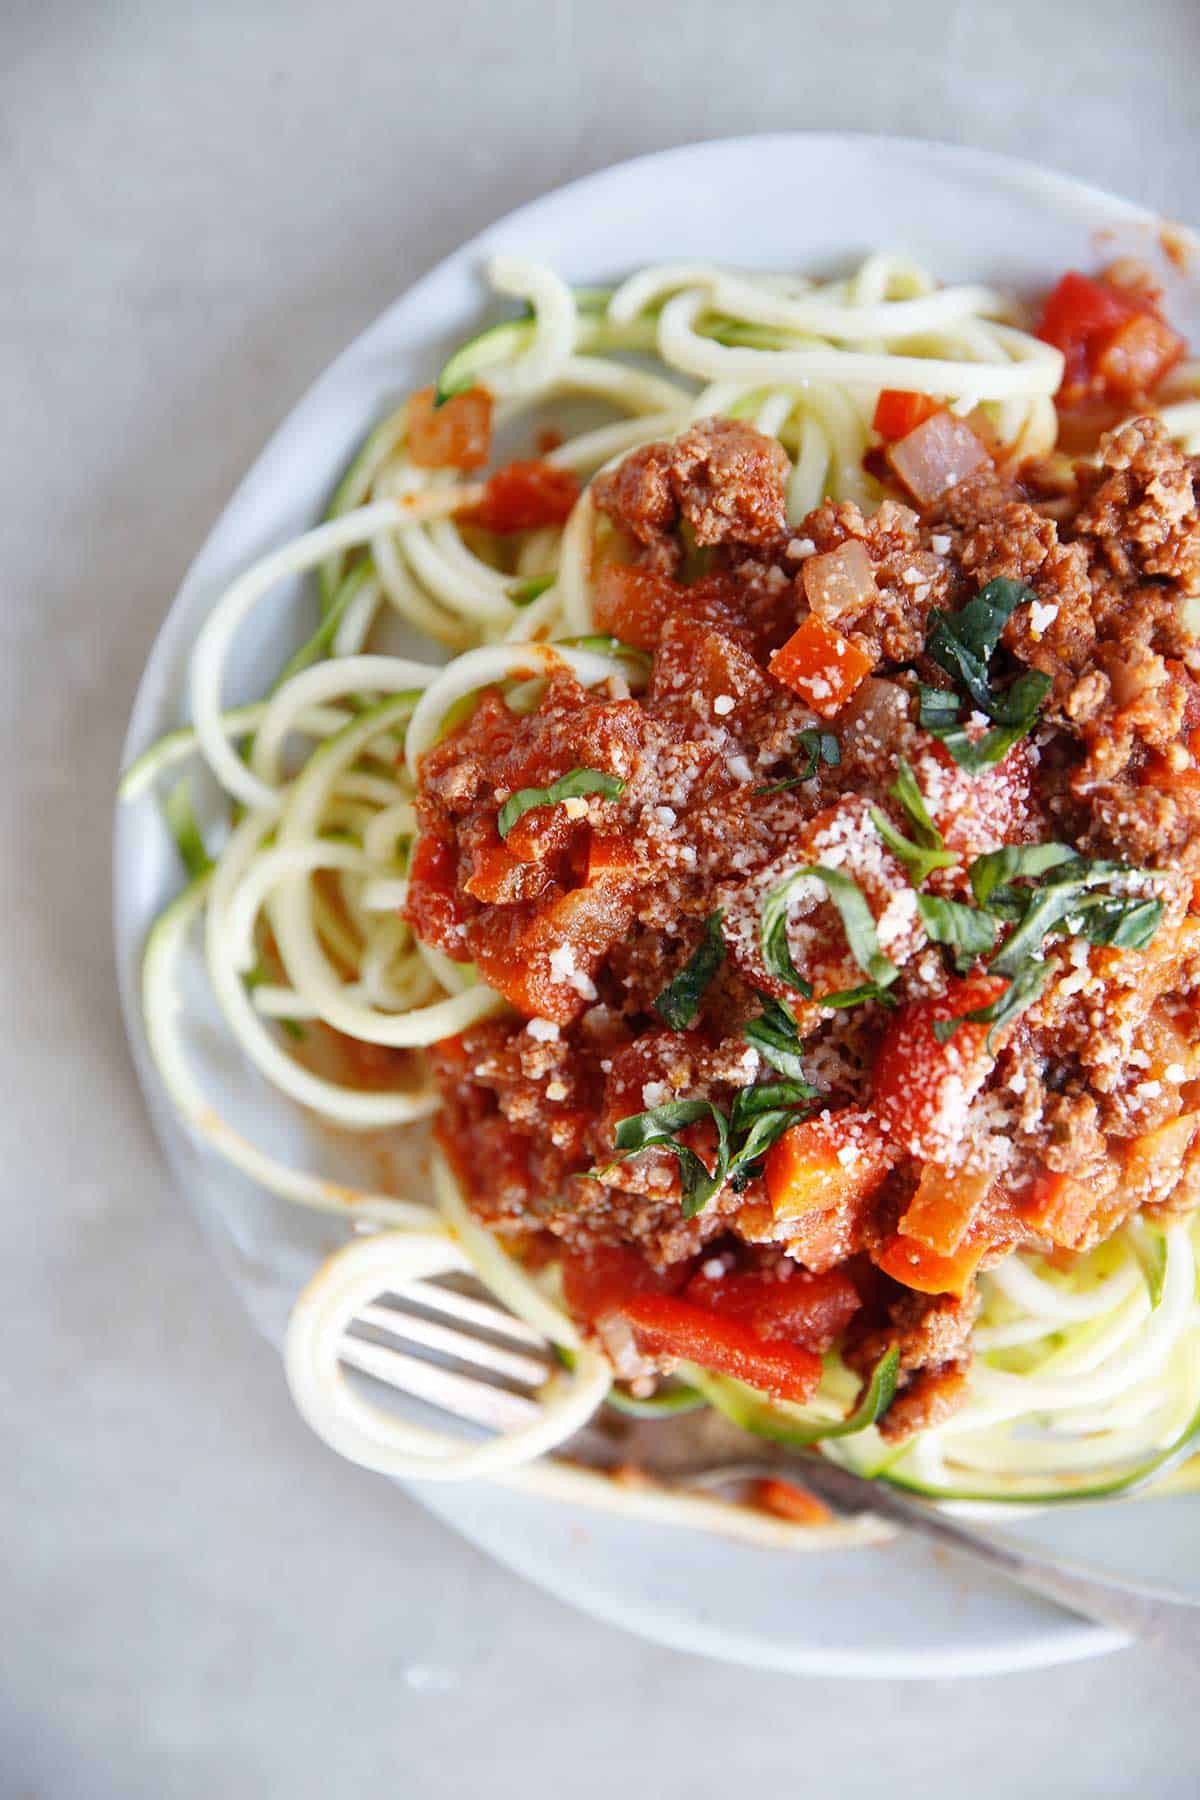 Zucchini spaghetti with homemade meat sauce.